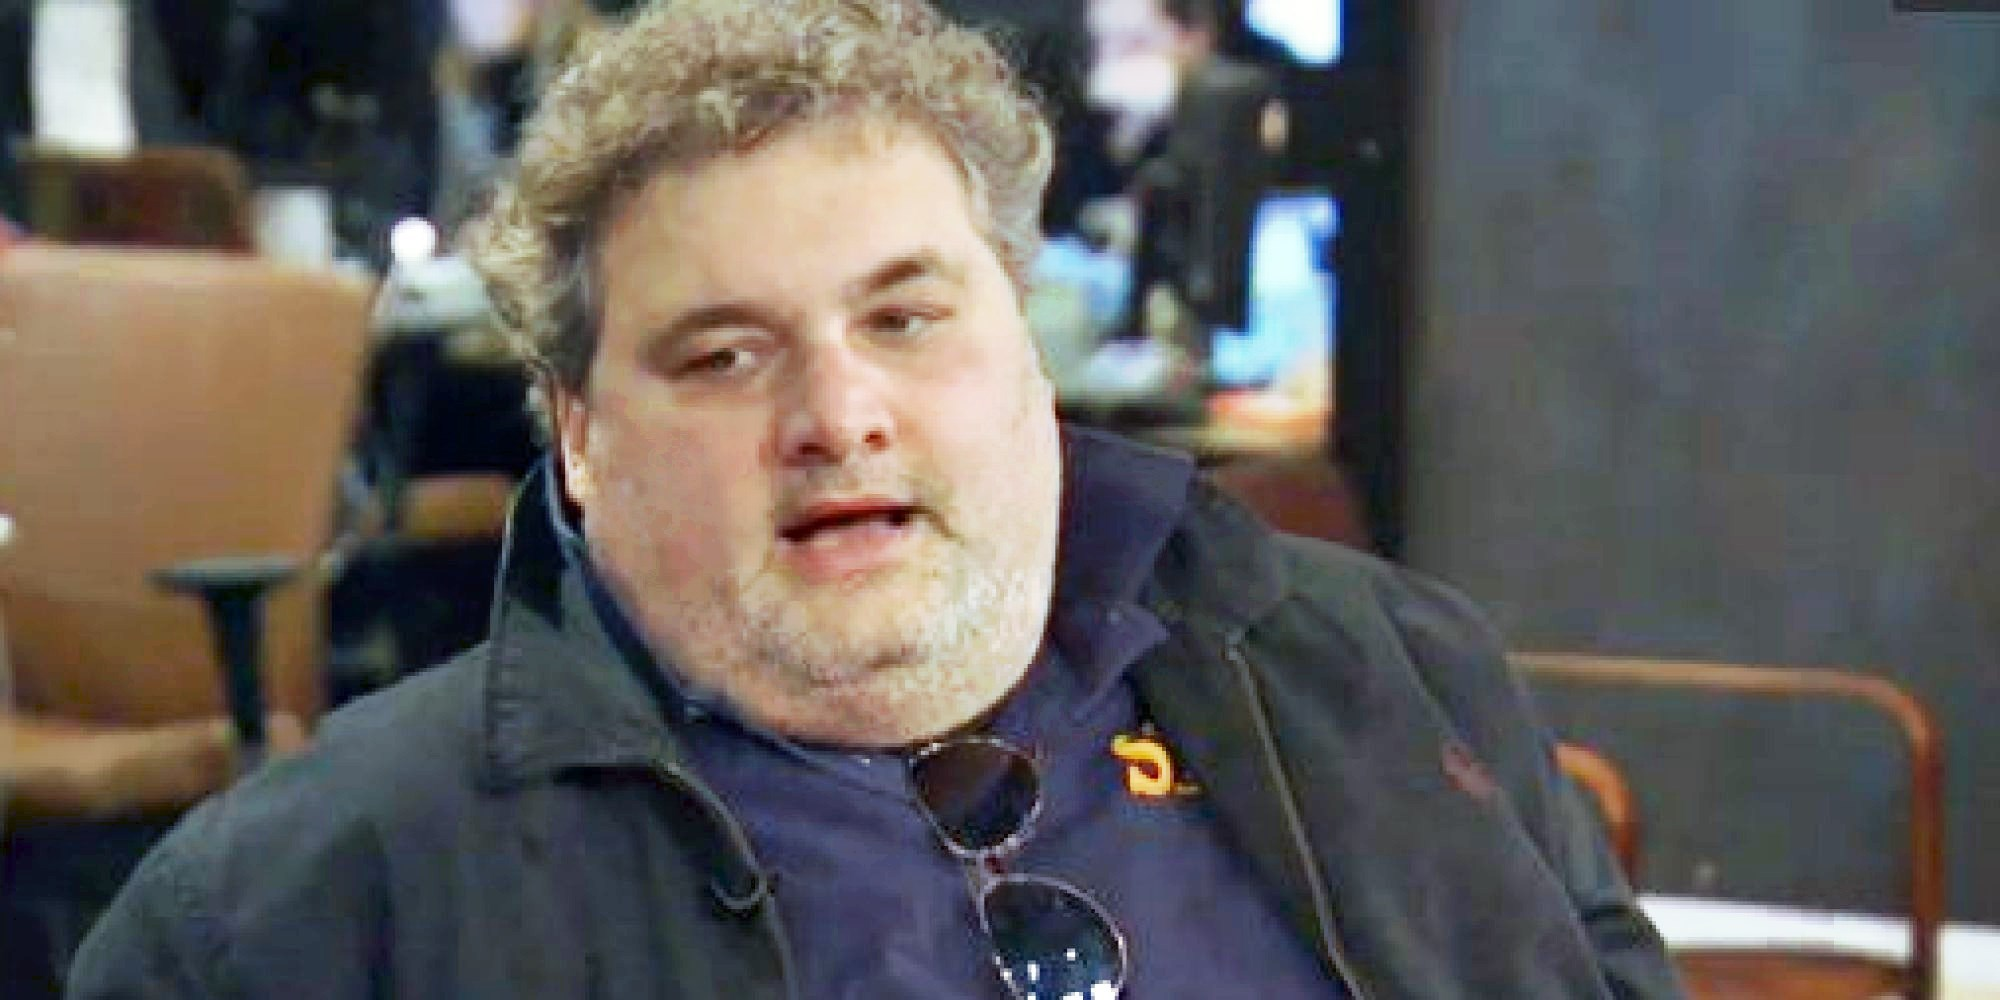 Artie Lange New York Artie Lange Known People Famous People News And Biographies